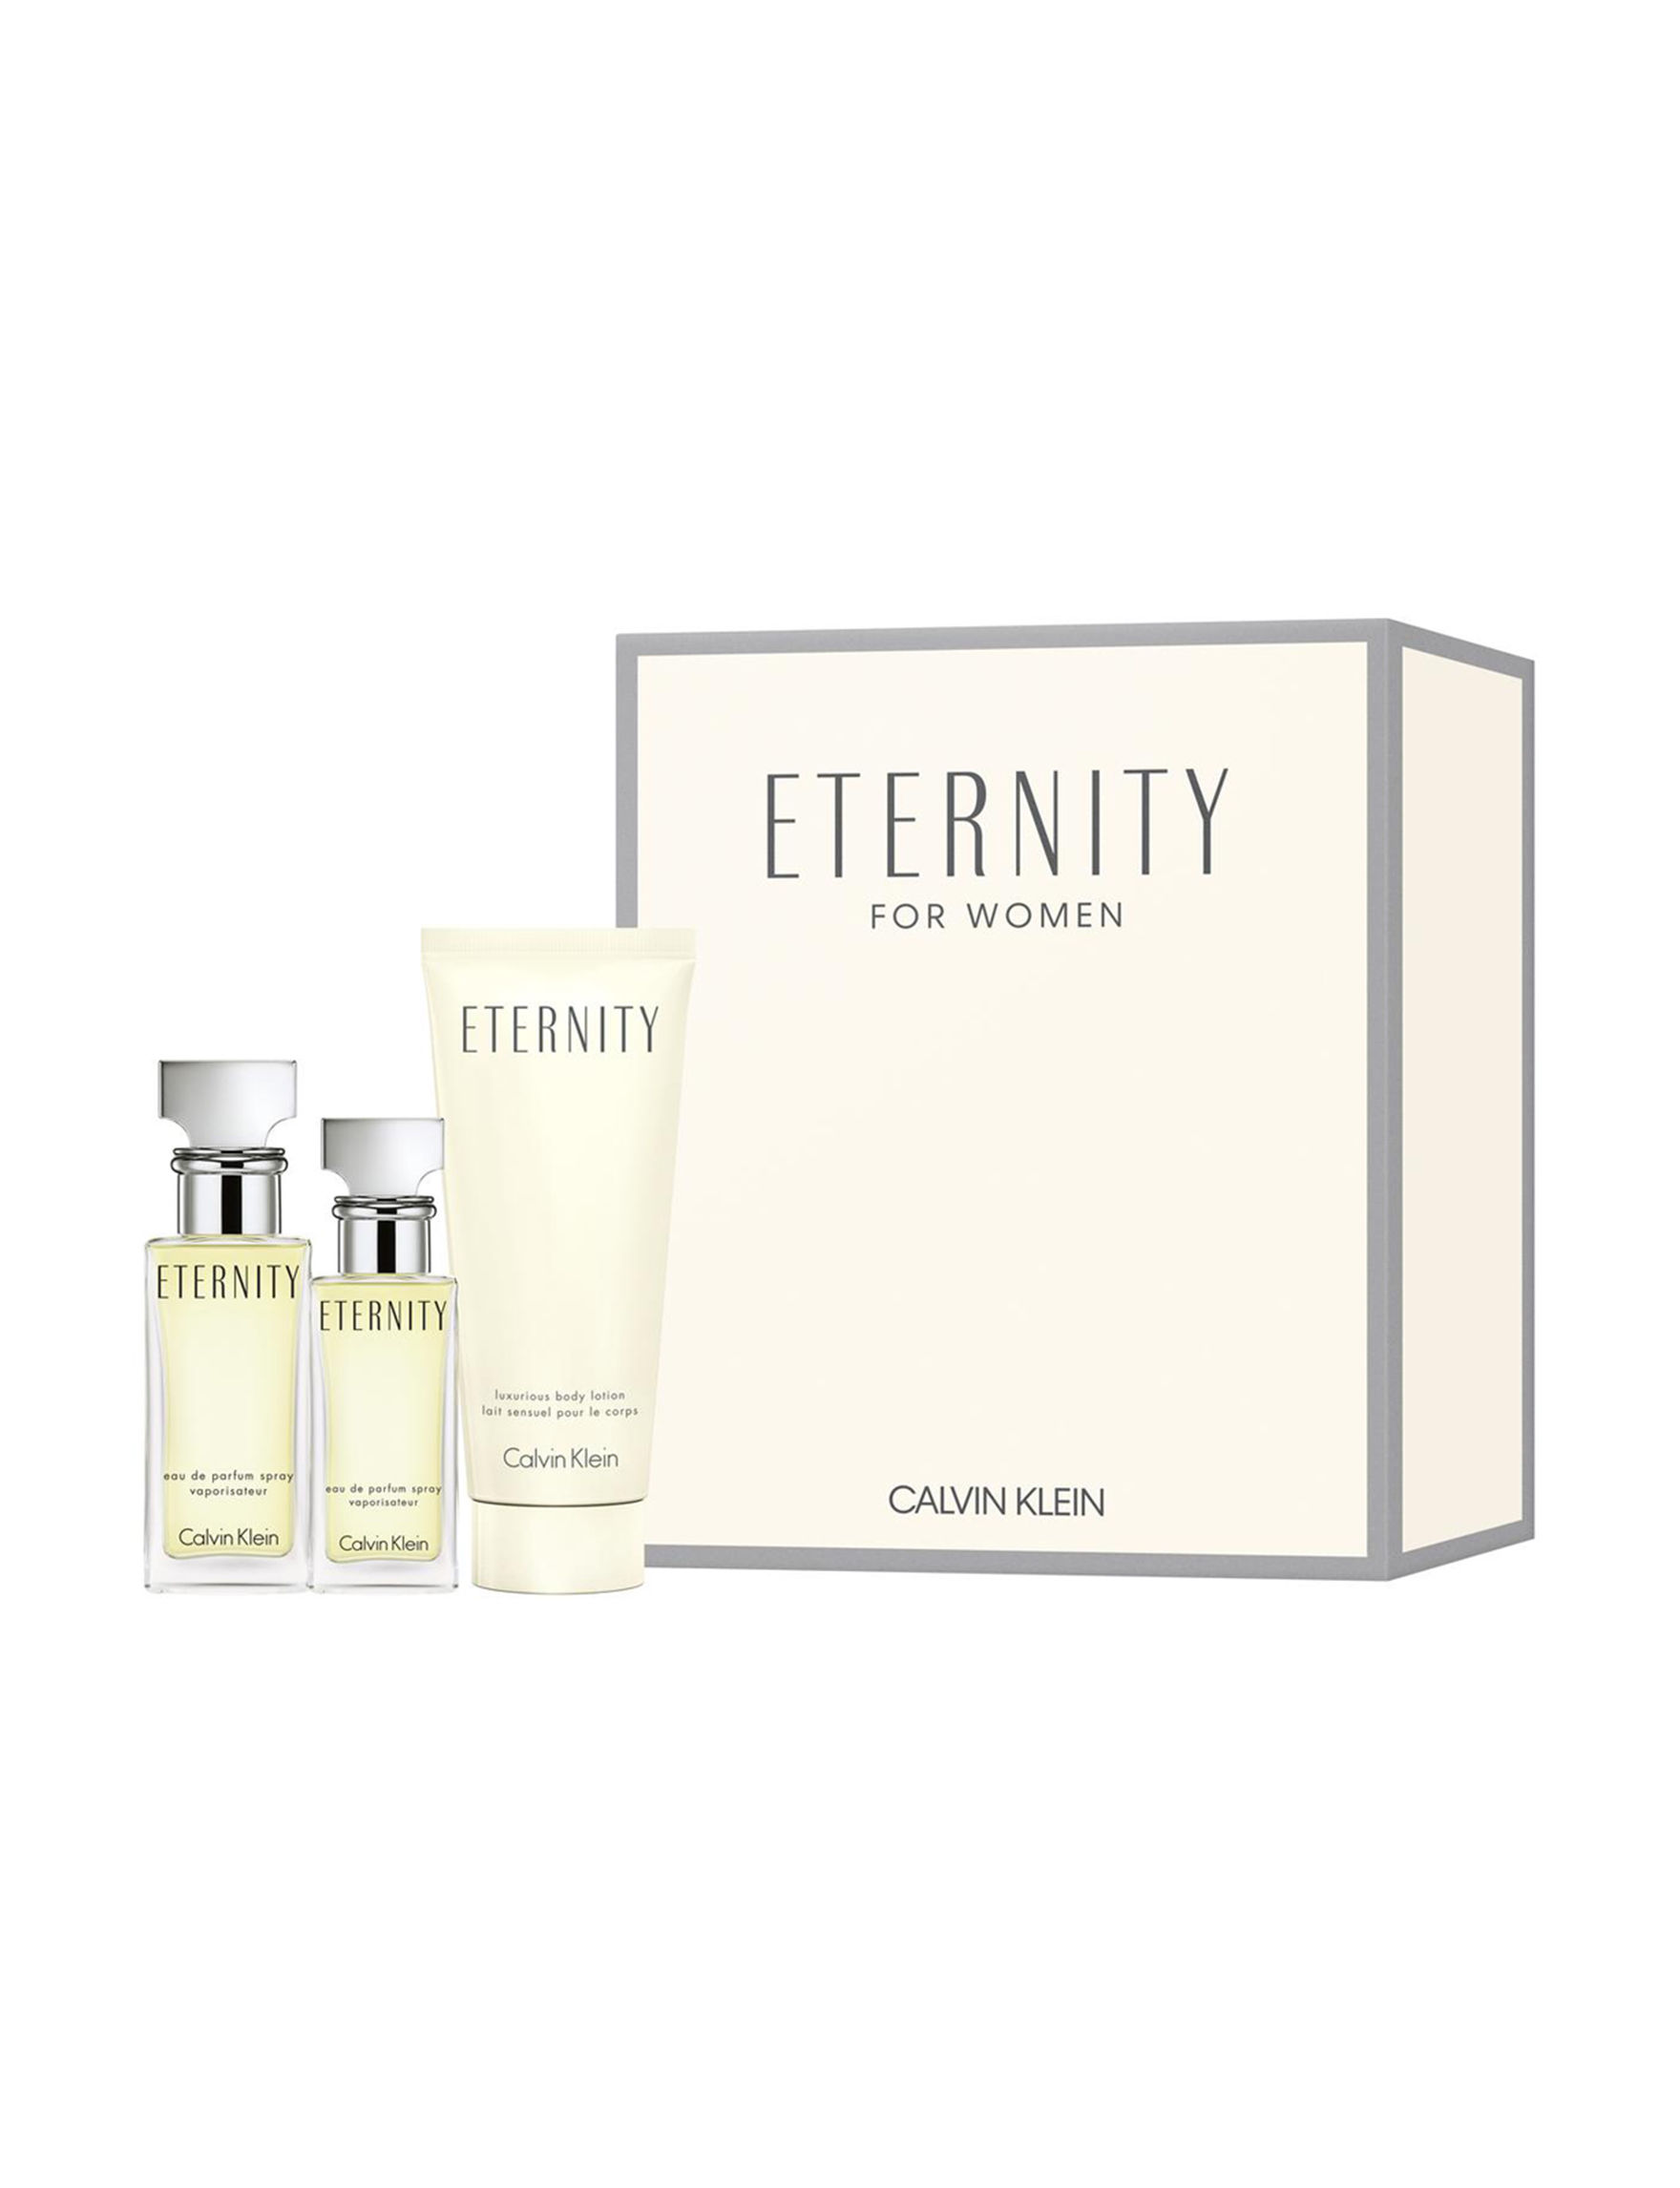 Calvin Klein Eternity 3 Pc Eternity Gift Set A 100 Value Stage